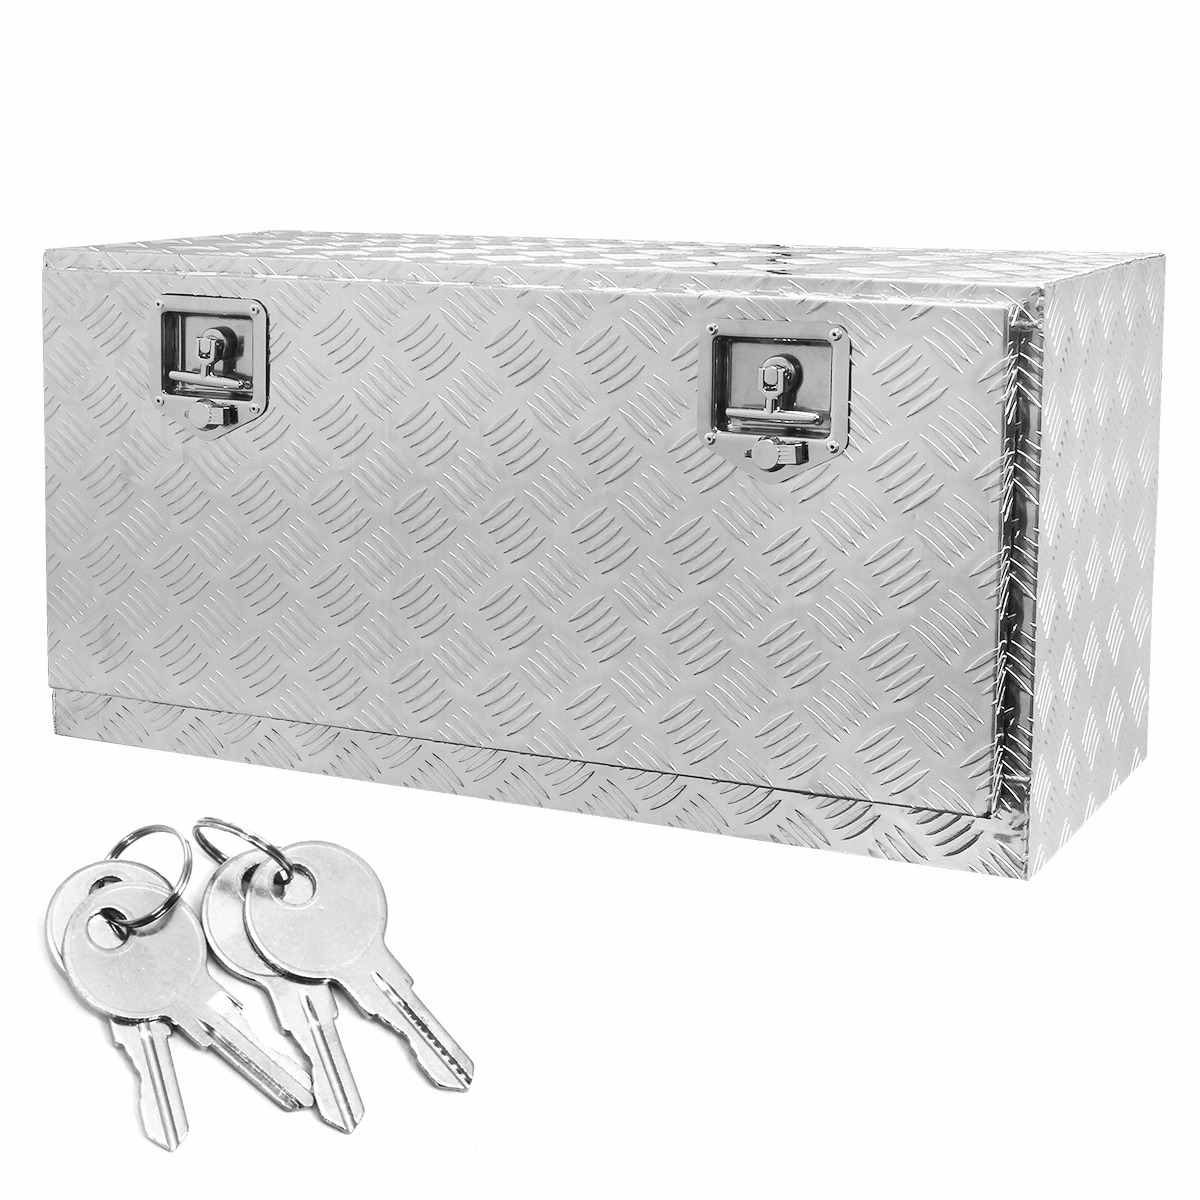 "36"" Truck Tool Box Aluminum Pickup Flat Bed with Build-in Lock"